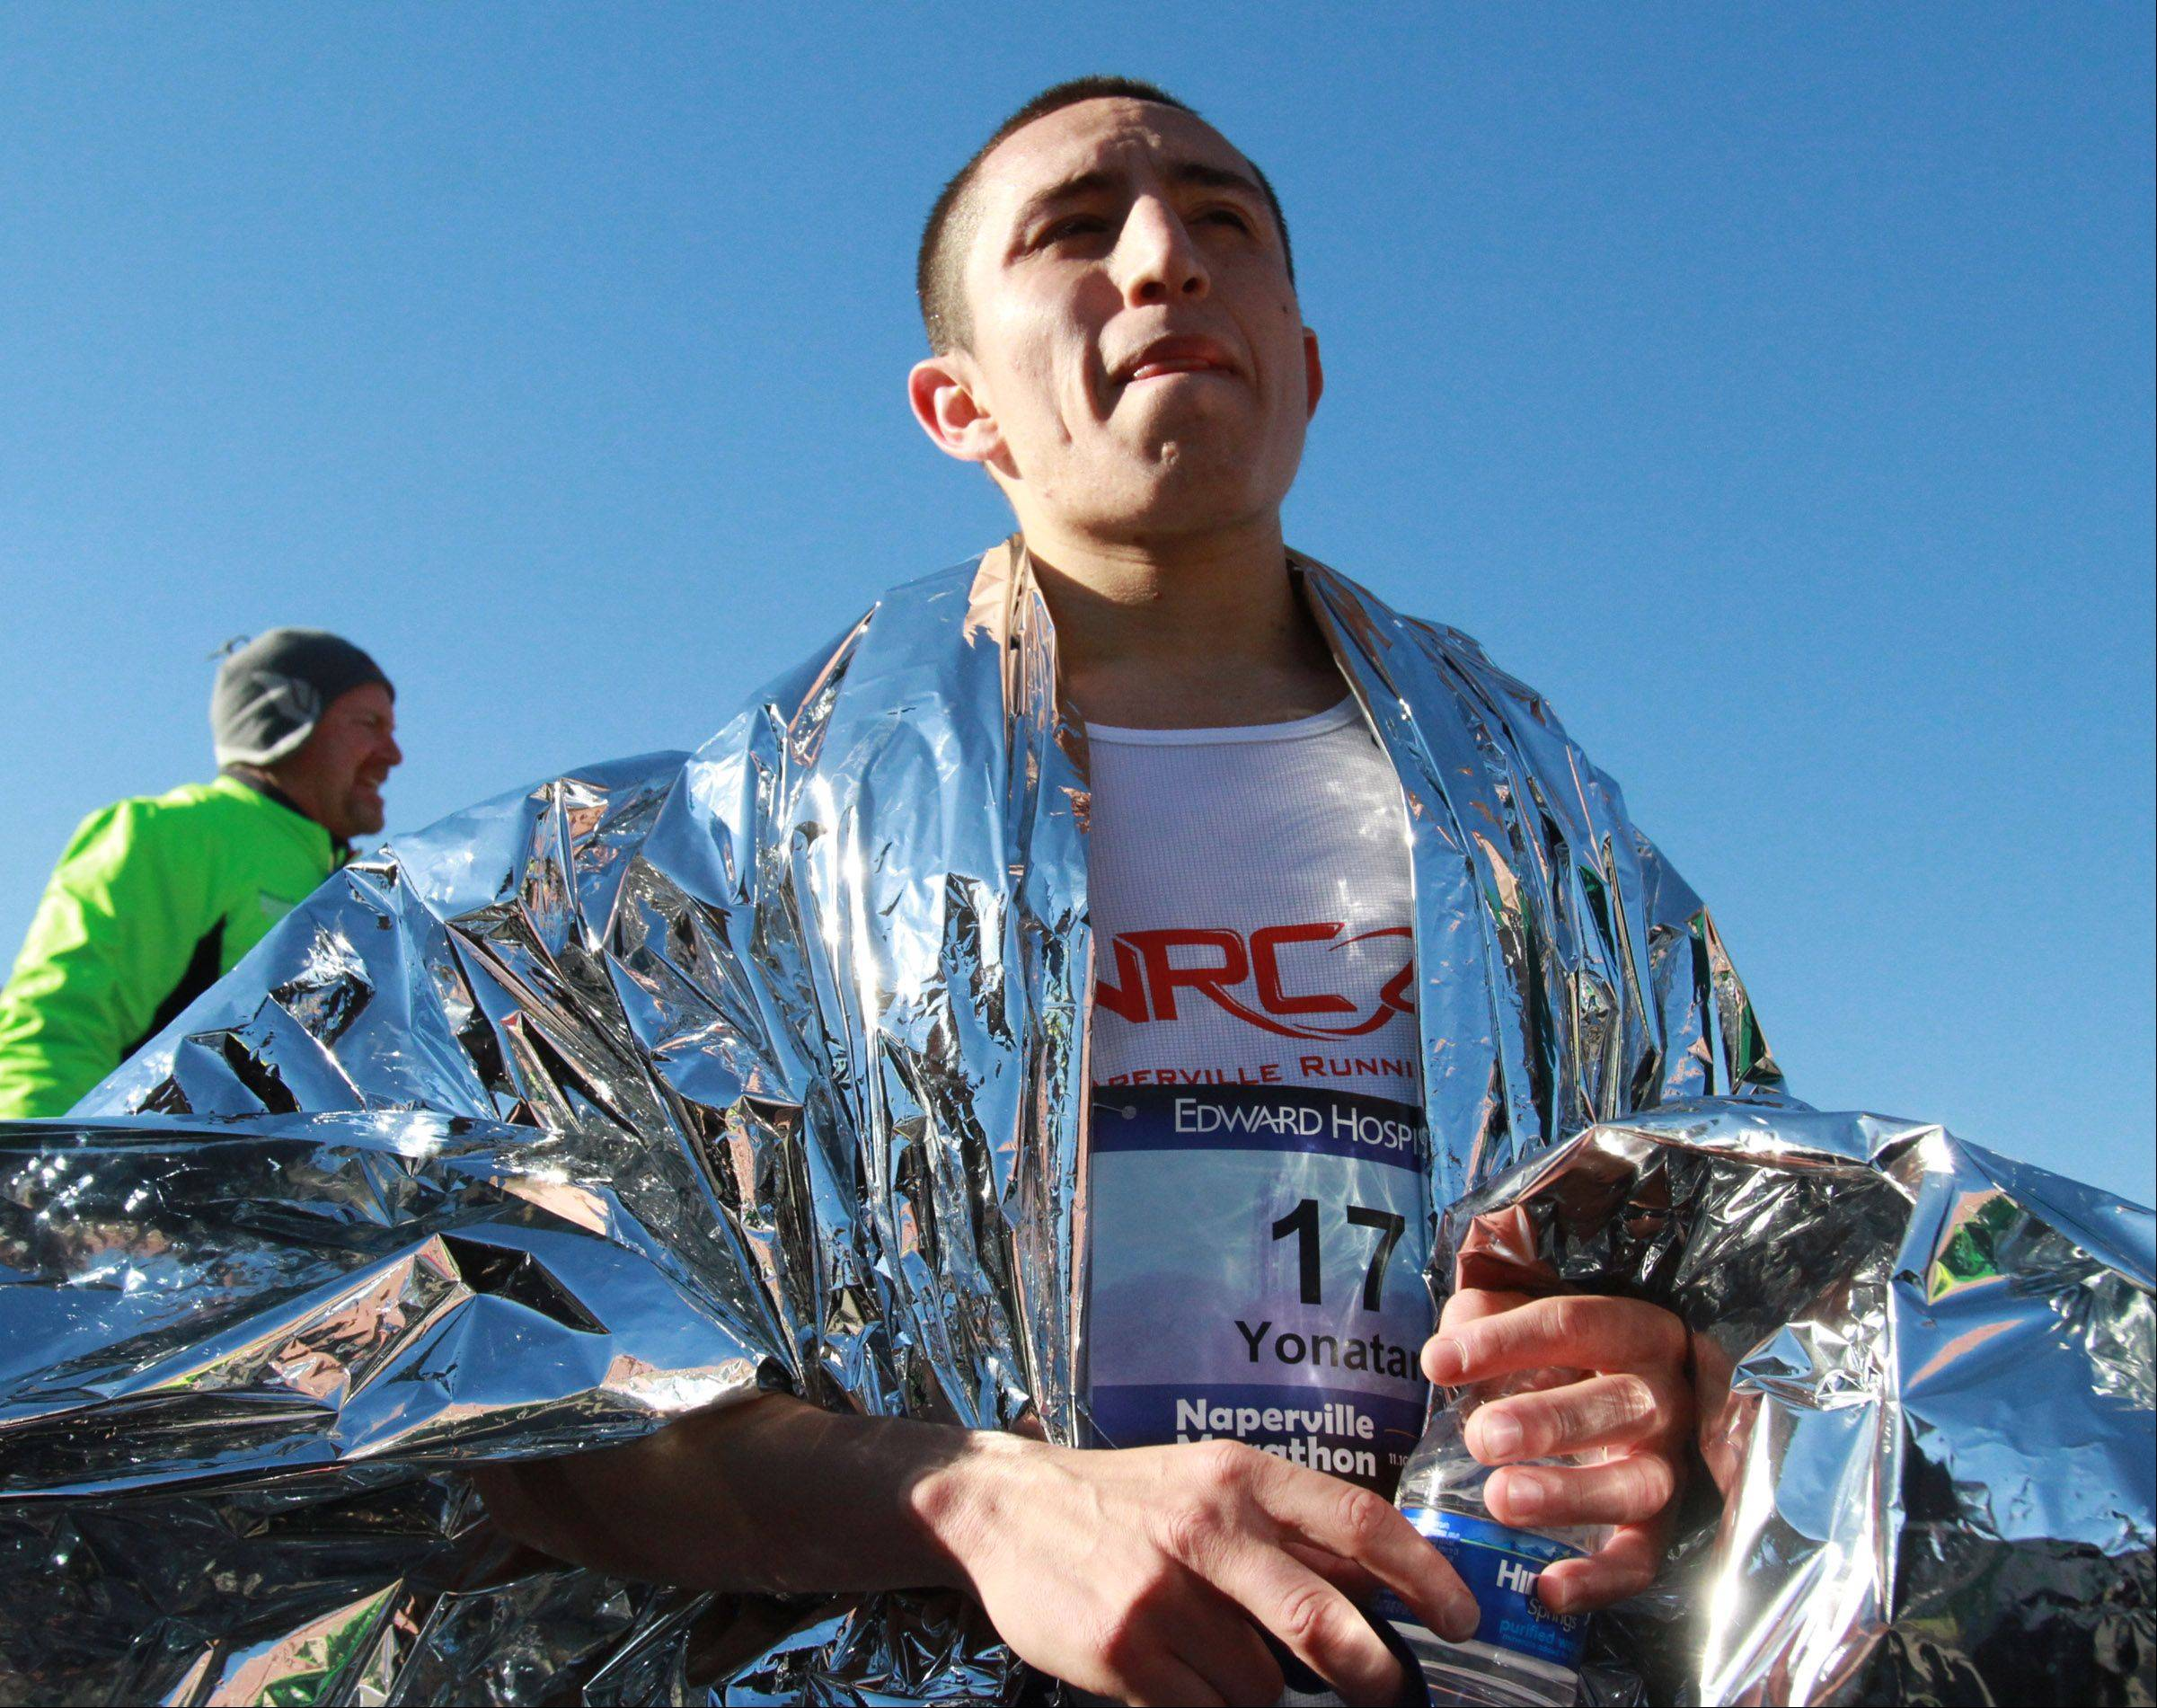 Yonatan Mascote of Naperville won the city's inaugural marathon Sunday with a time of 2:34:25.